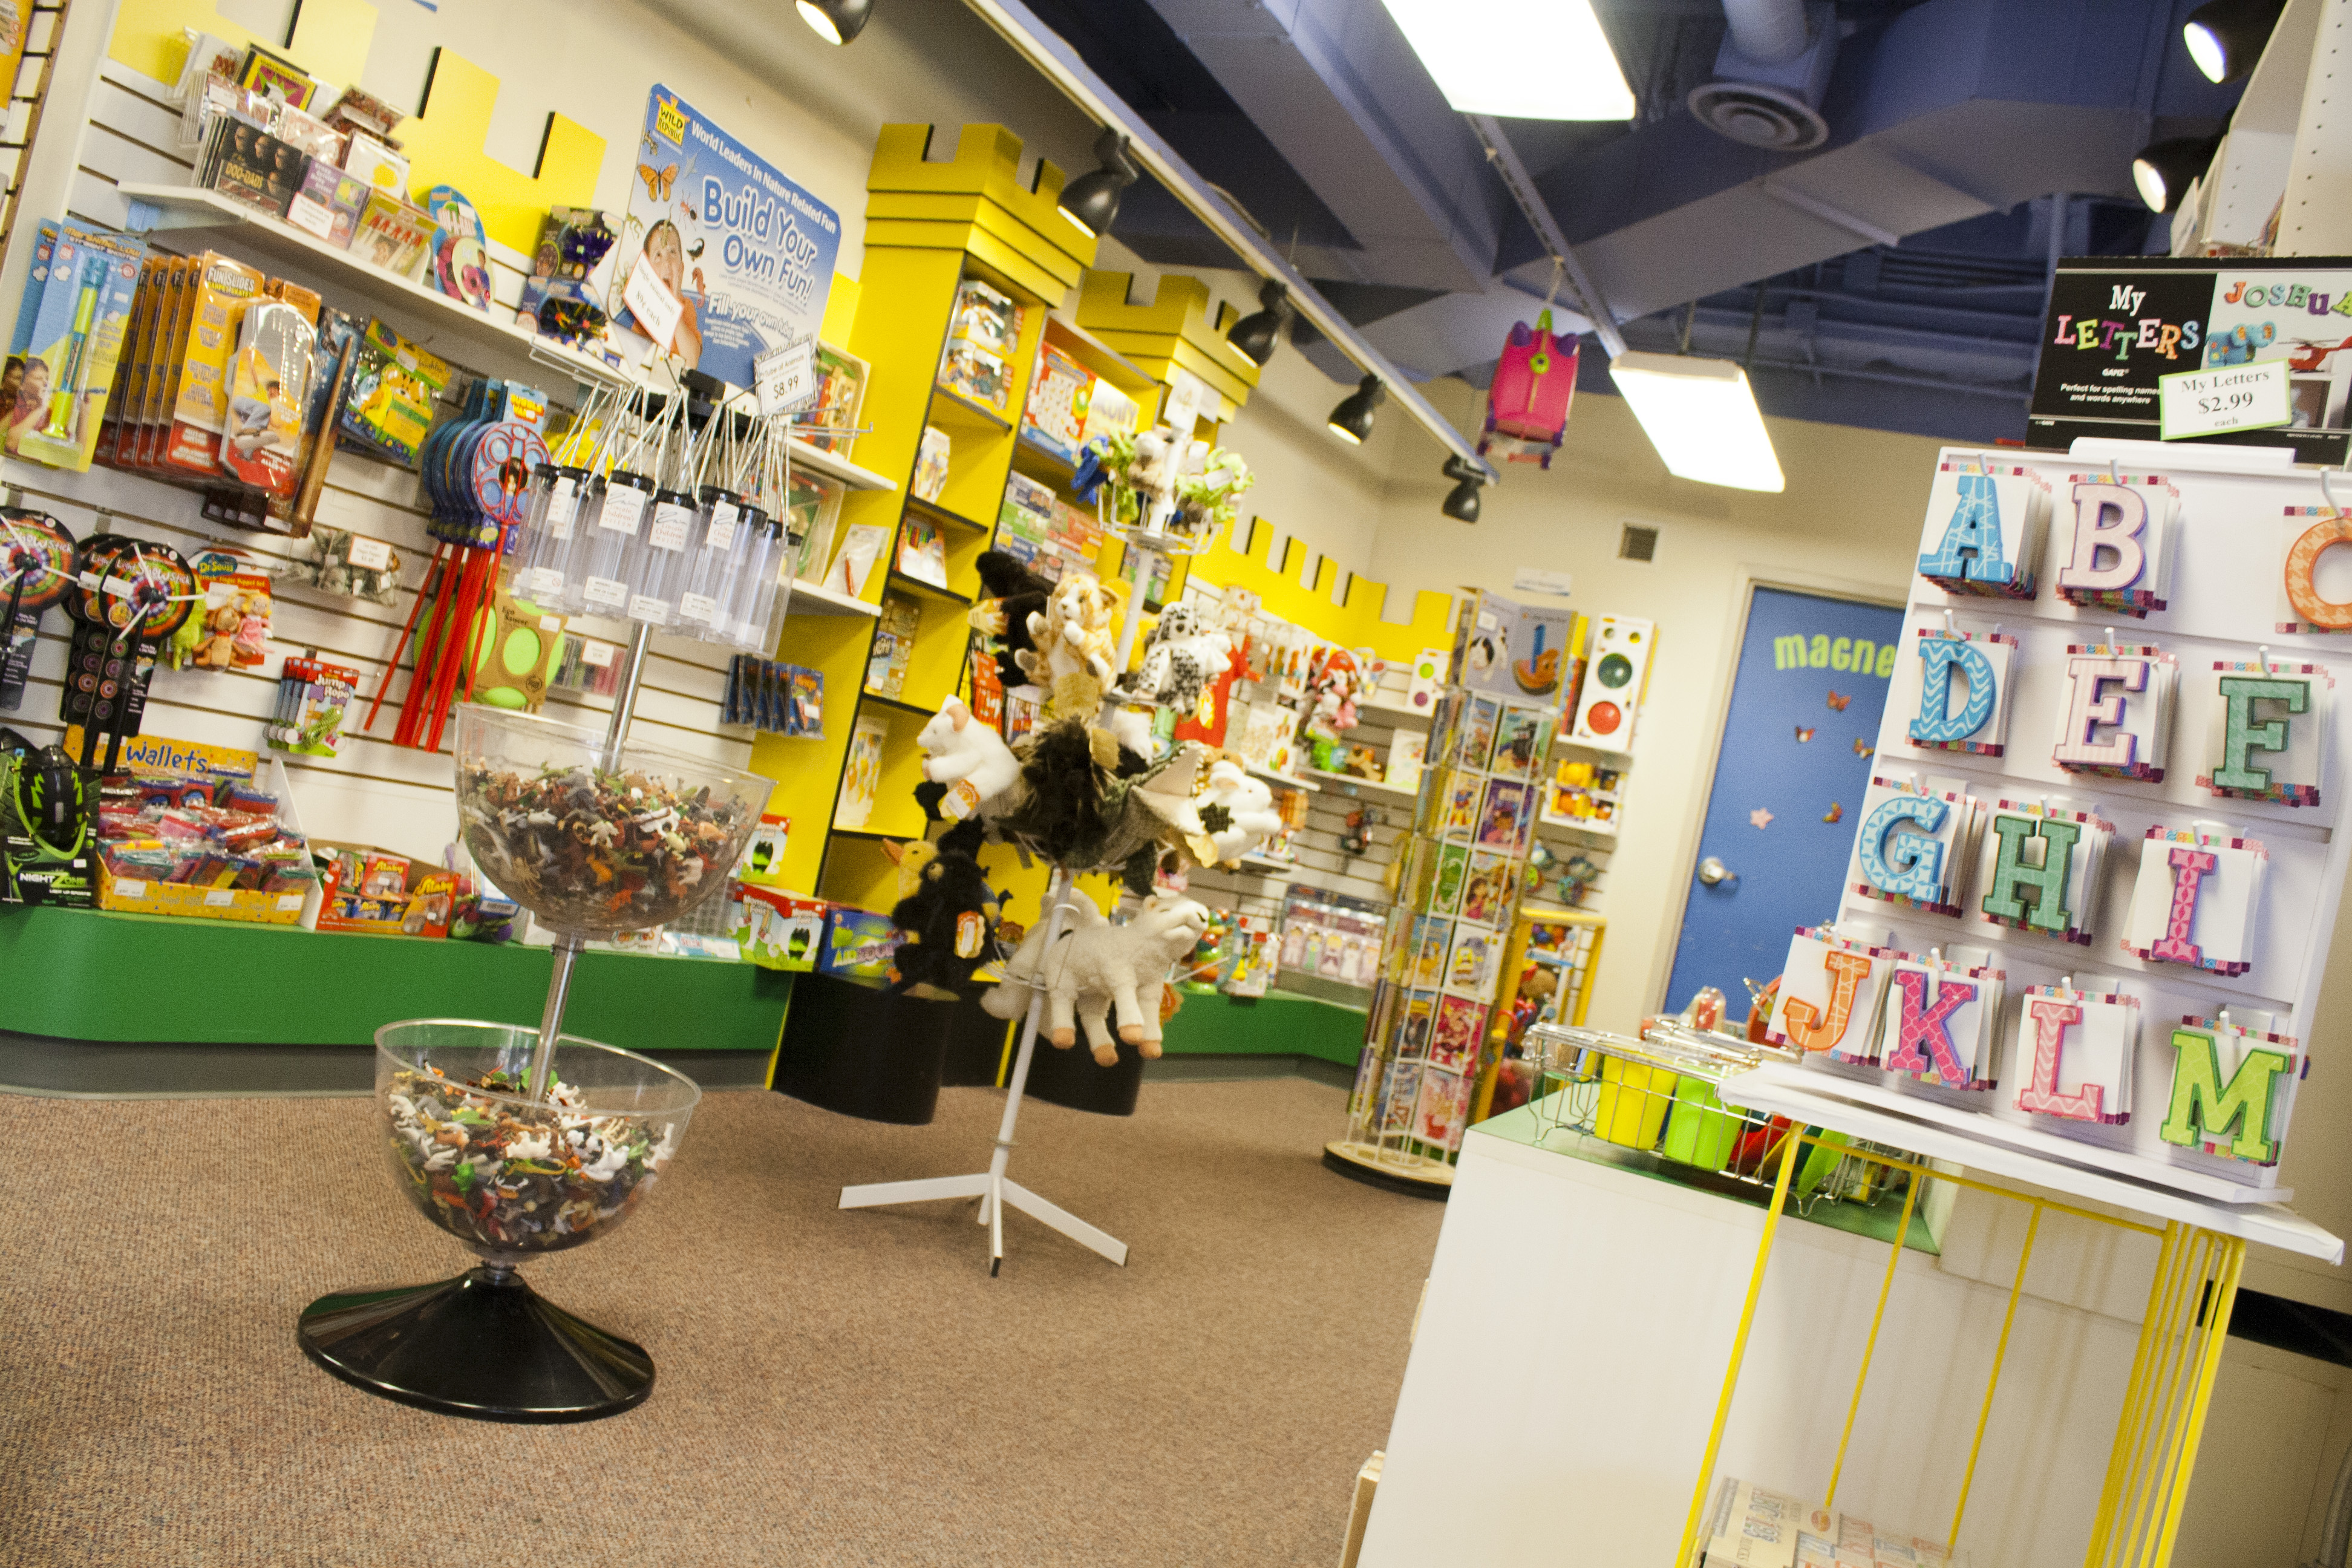 Twinkle's Toy Store